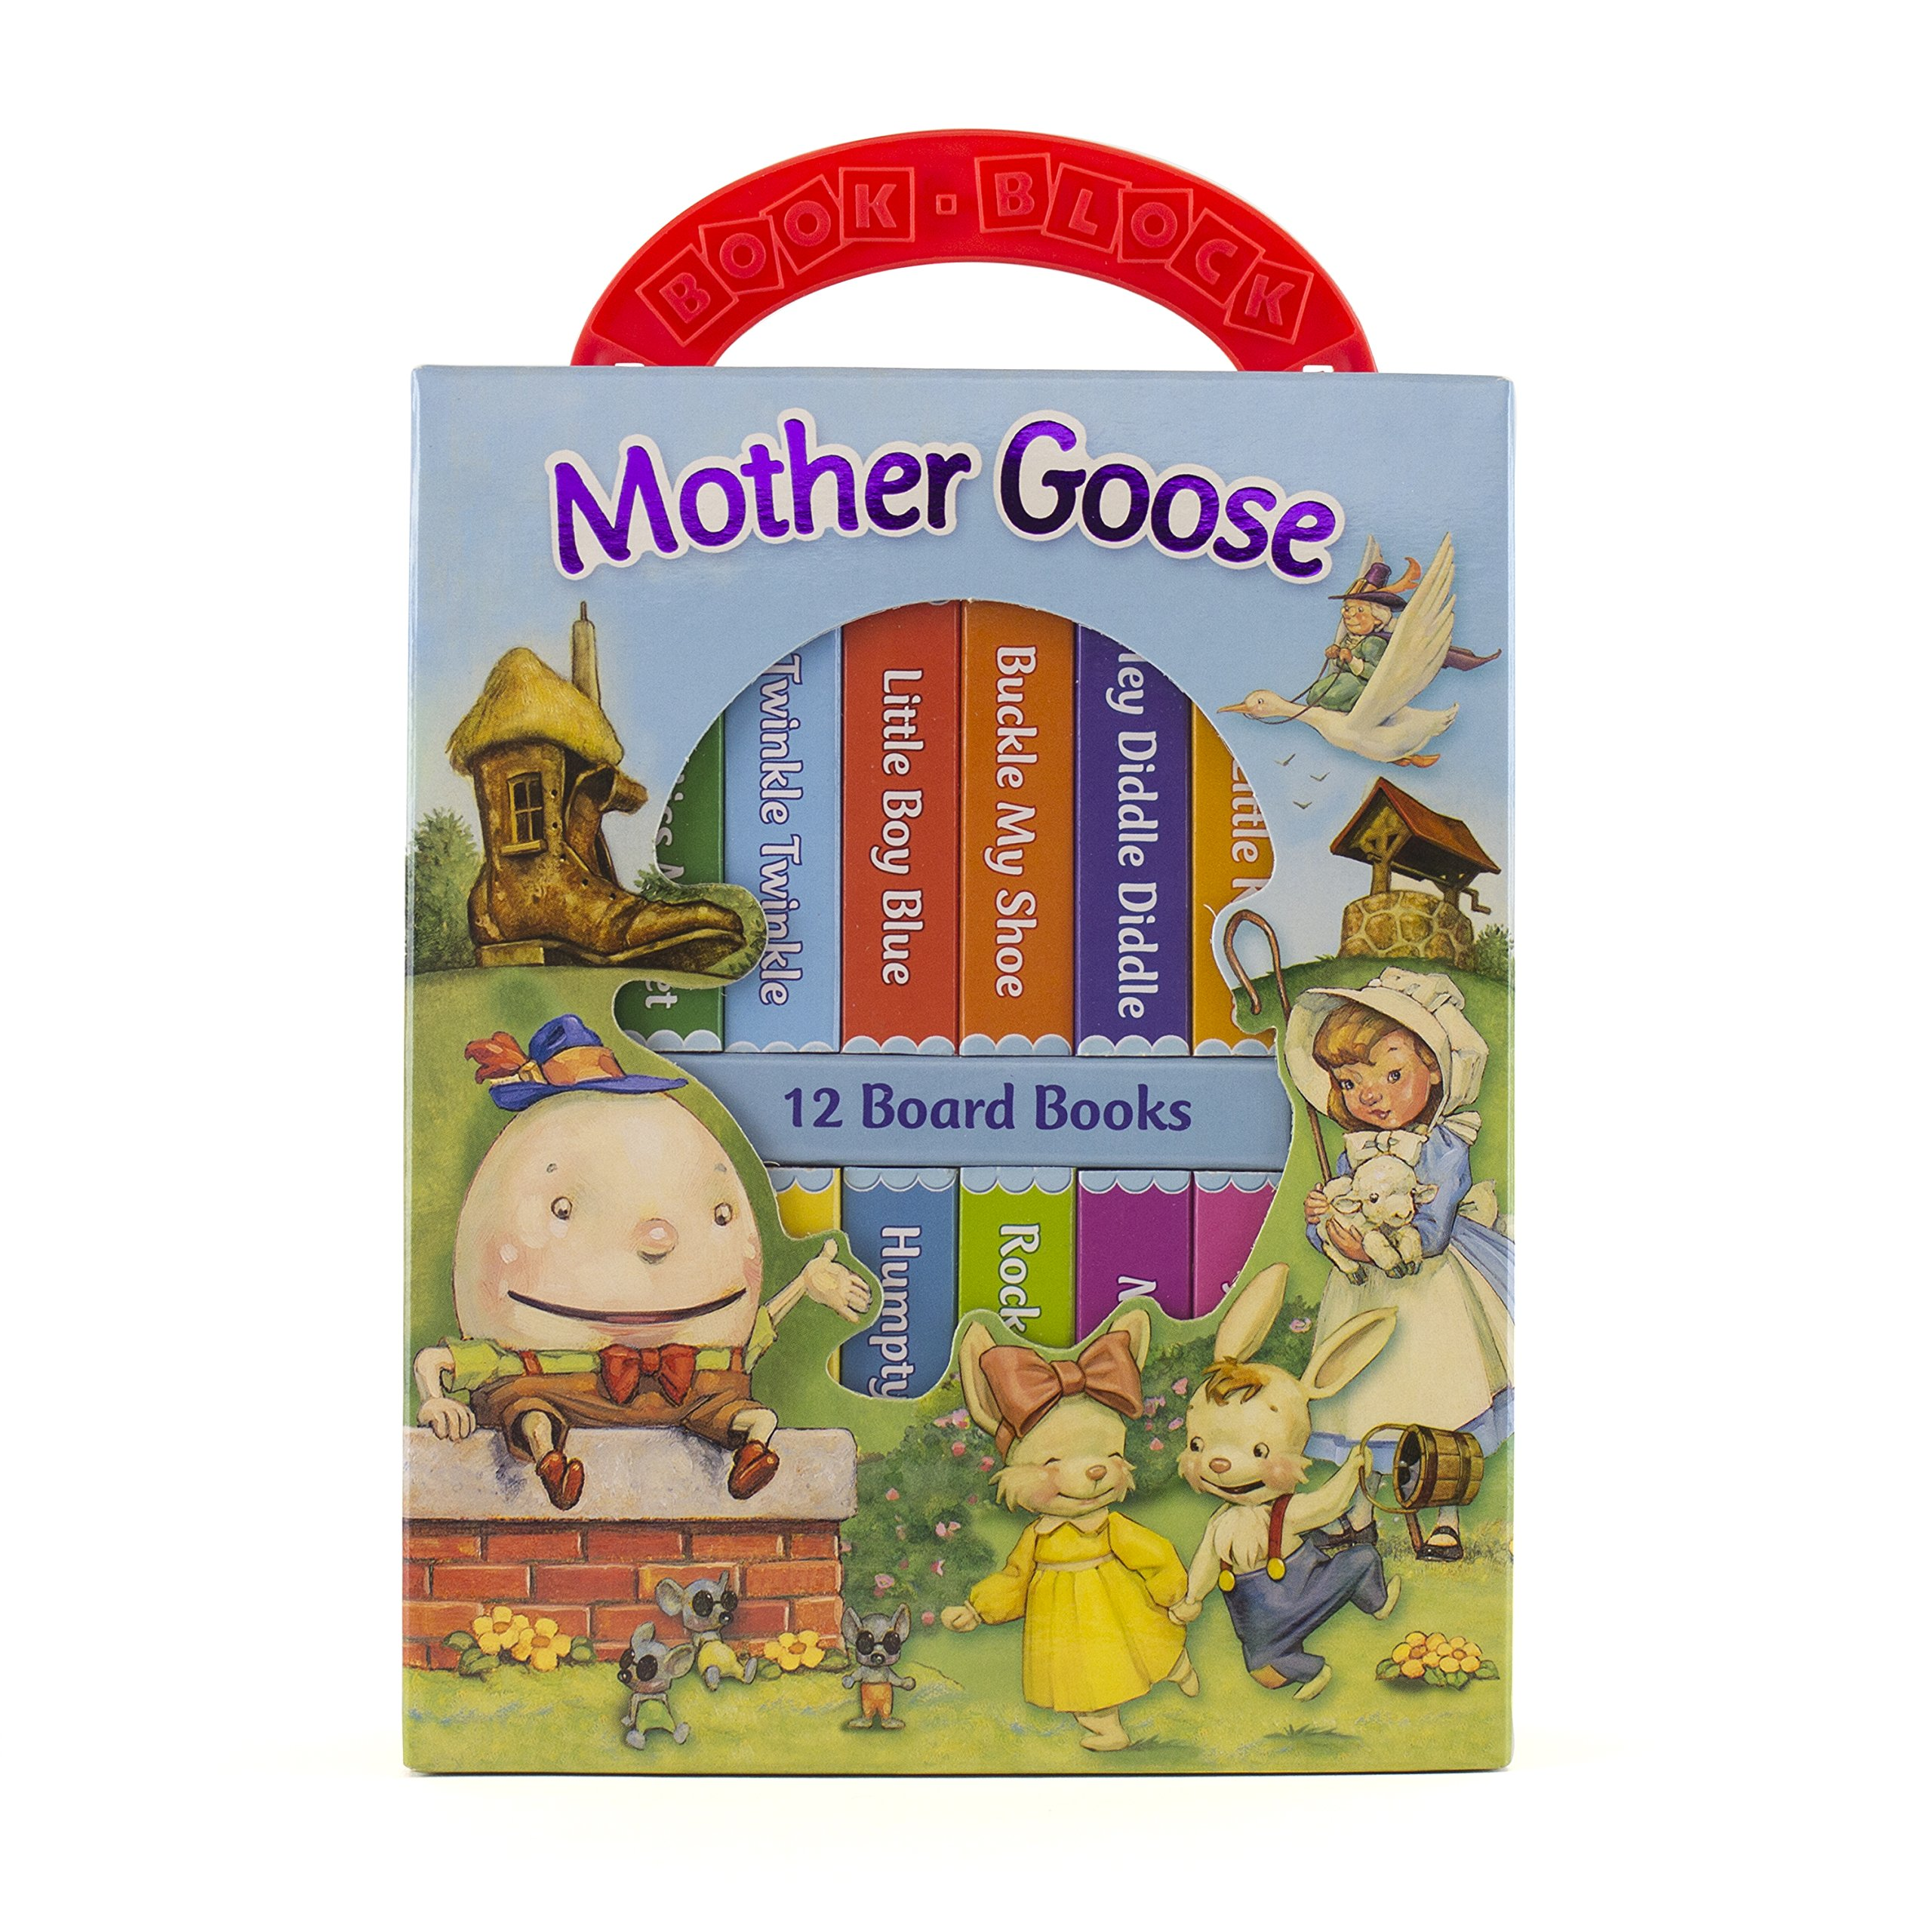 Mother Goose Deluxe My First Library 12 Board Book Set 9780785373957 Beauty Barn Mom Lit Up Water Editors Of Publications International Lt Books